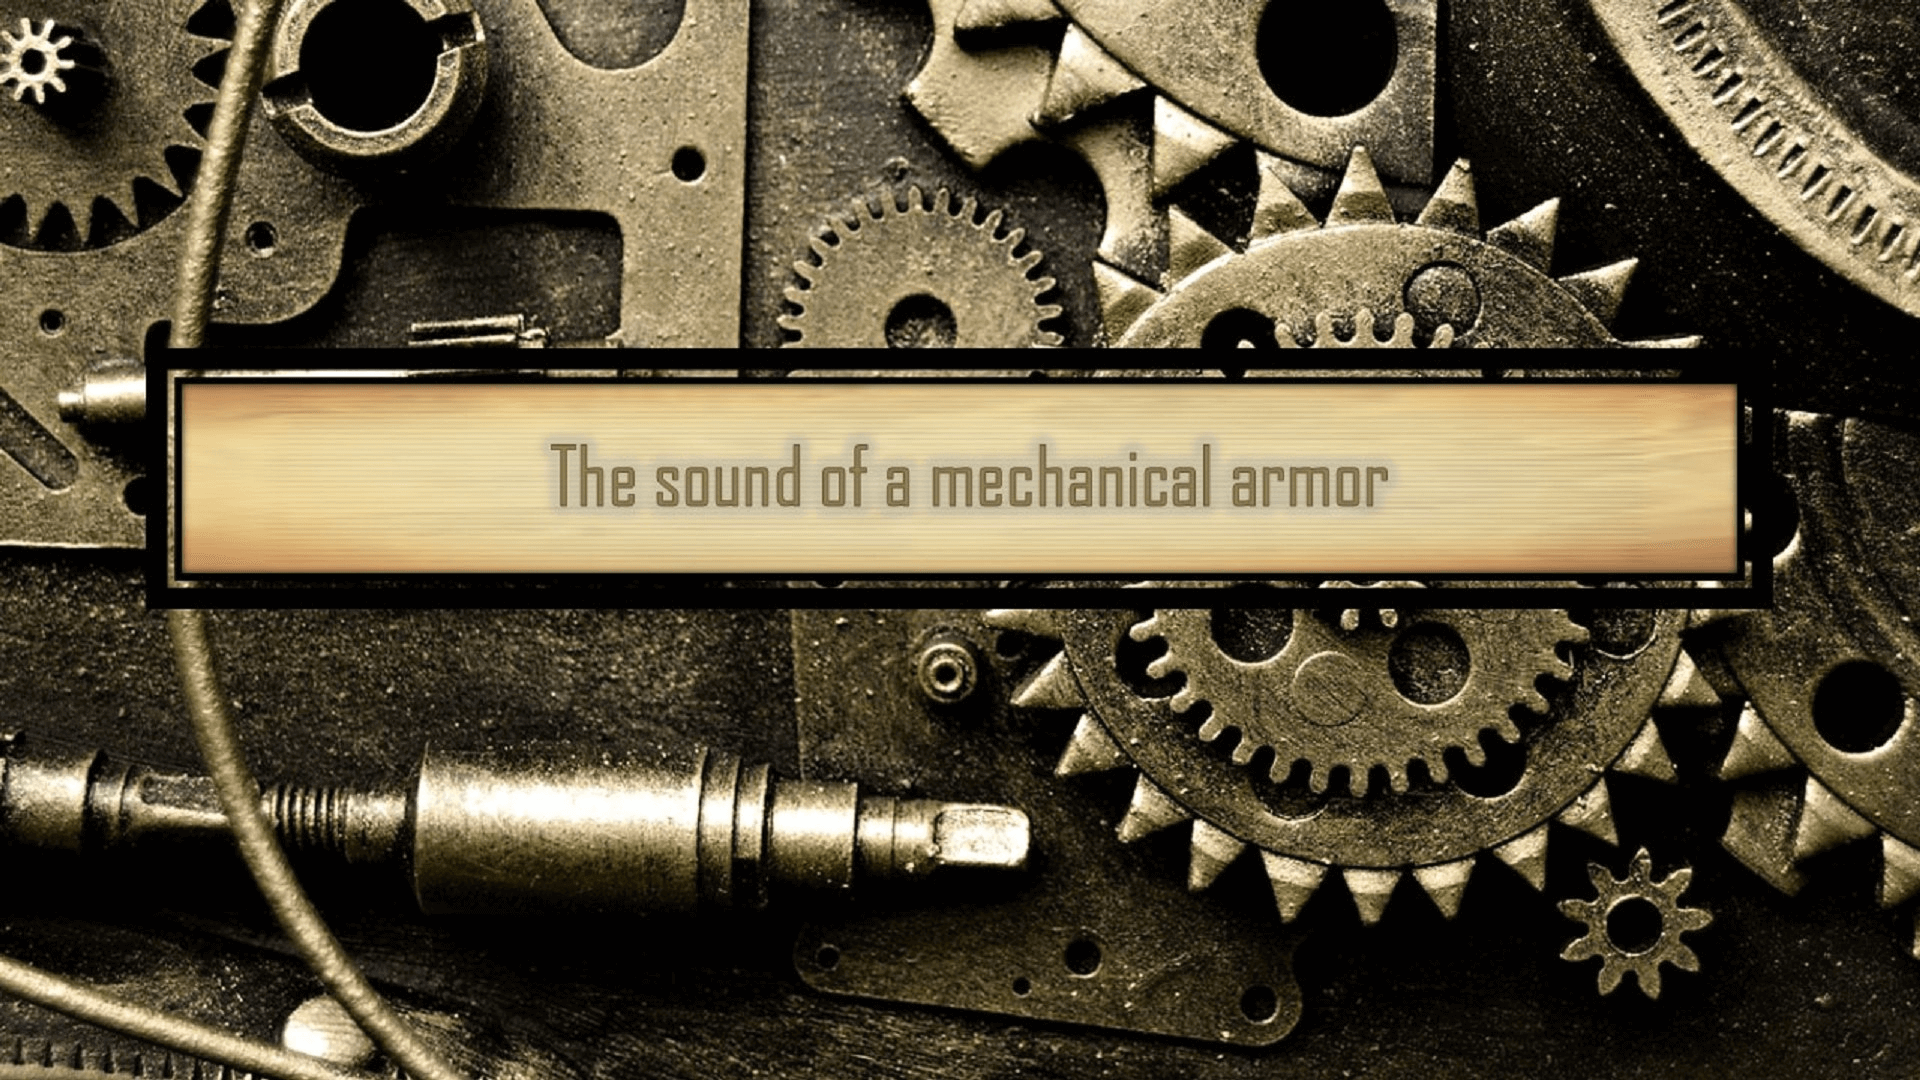 The Sounds Of A Mechanical Armor by Mechanics Mechanics in